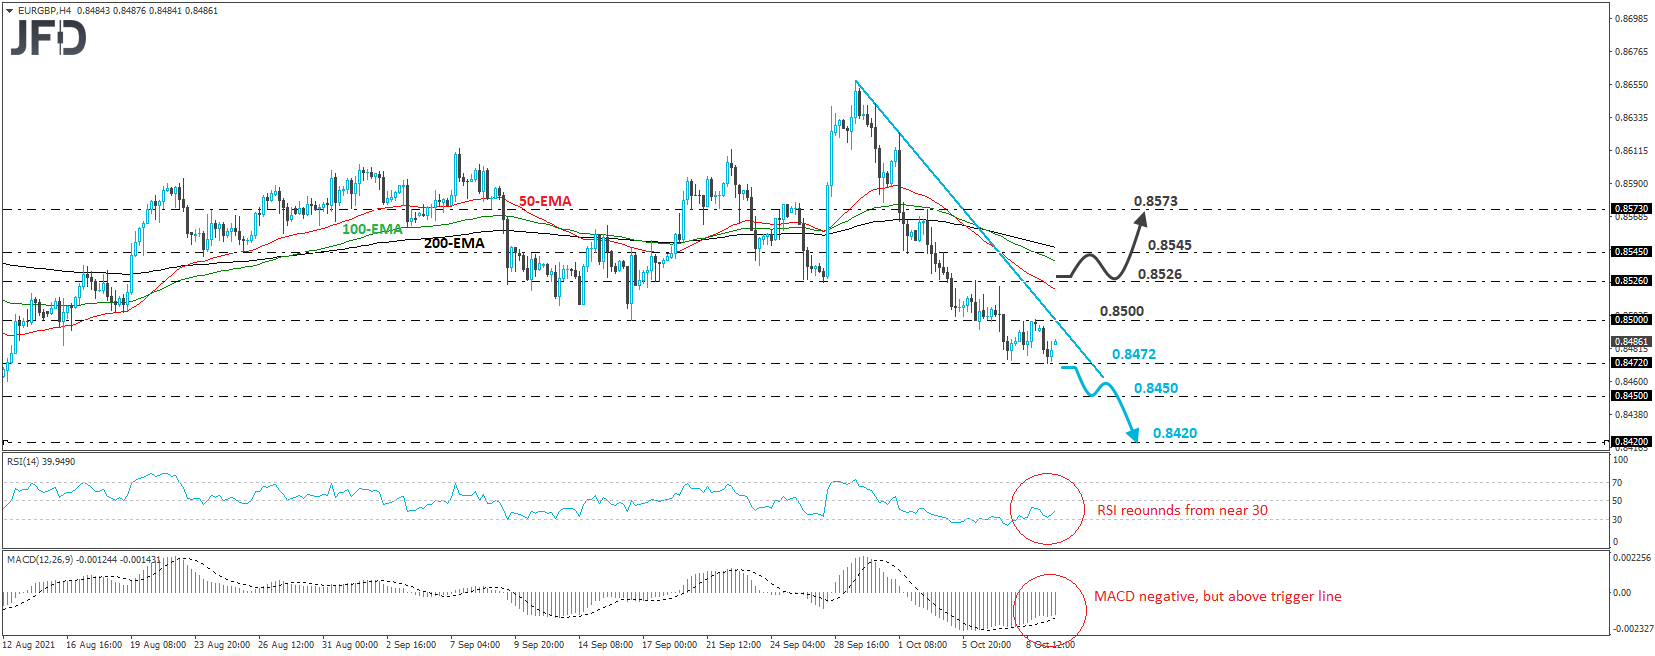 EUR/GBP Stays In A Downtrend, But Slows Down